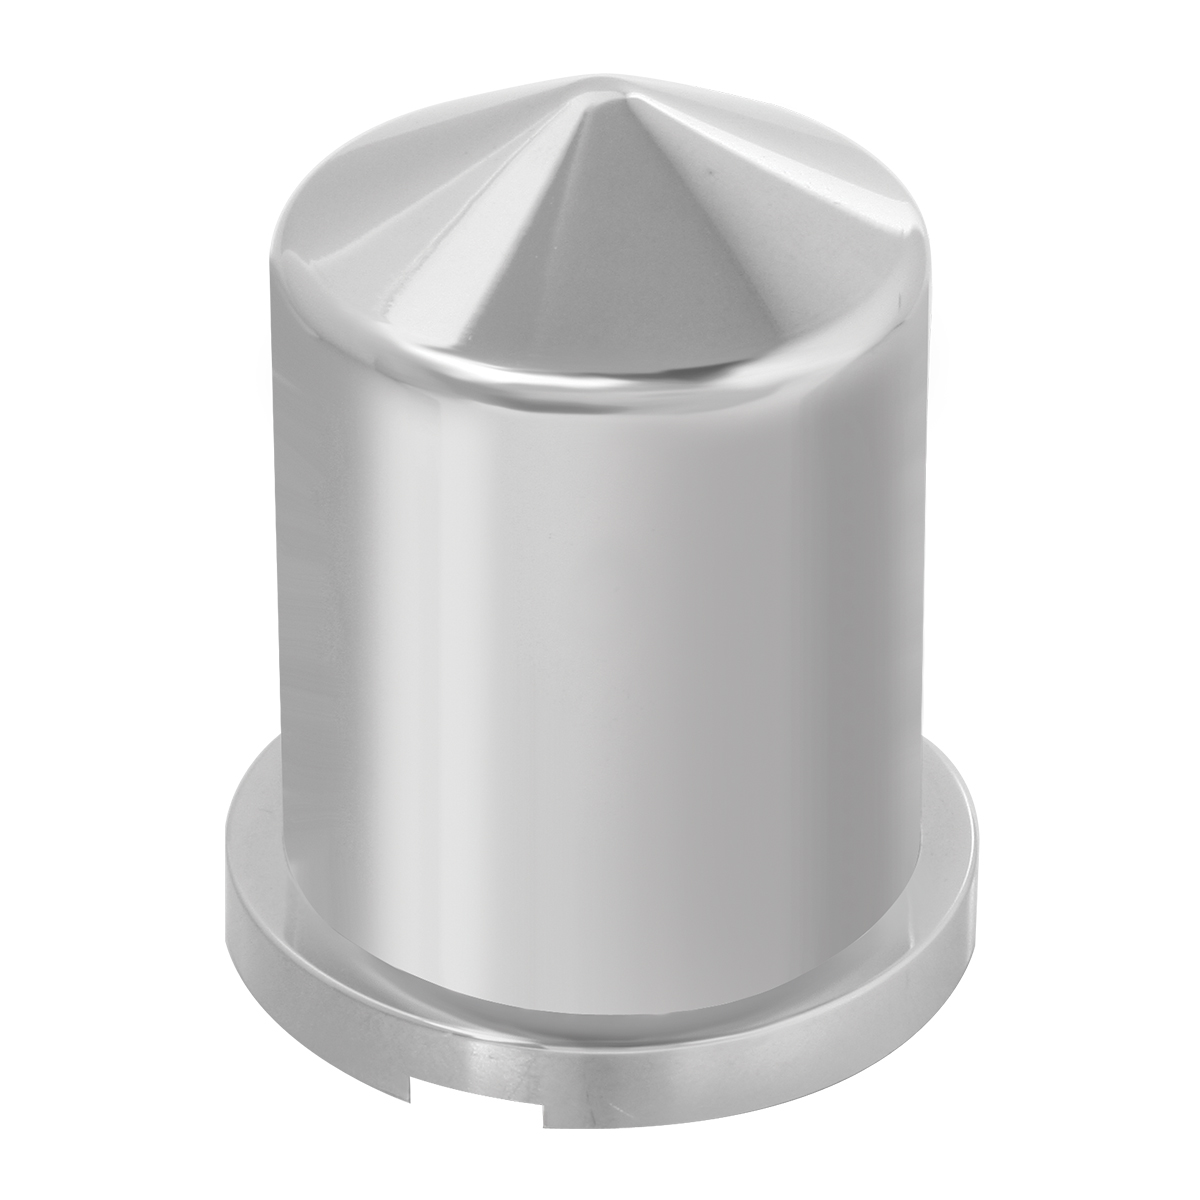 "Chrome Plastic 1 ¼"" & 33 mm Push-On Multi-Size Round Pointed Lug Nut Cover"